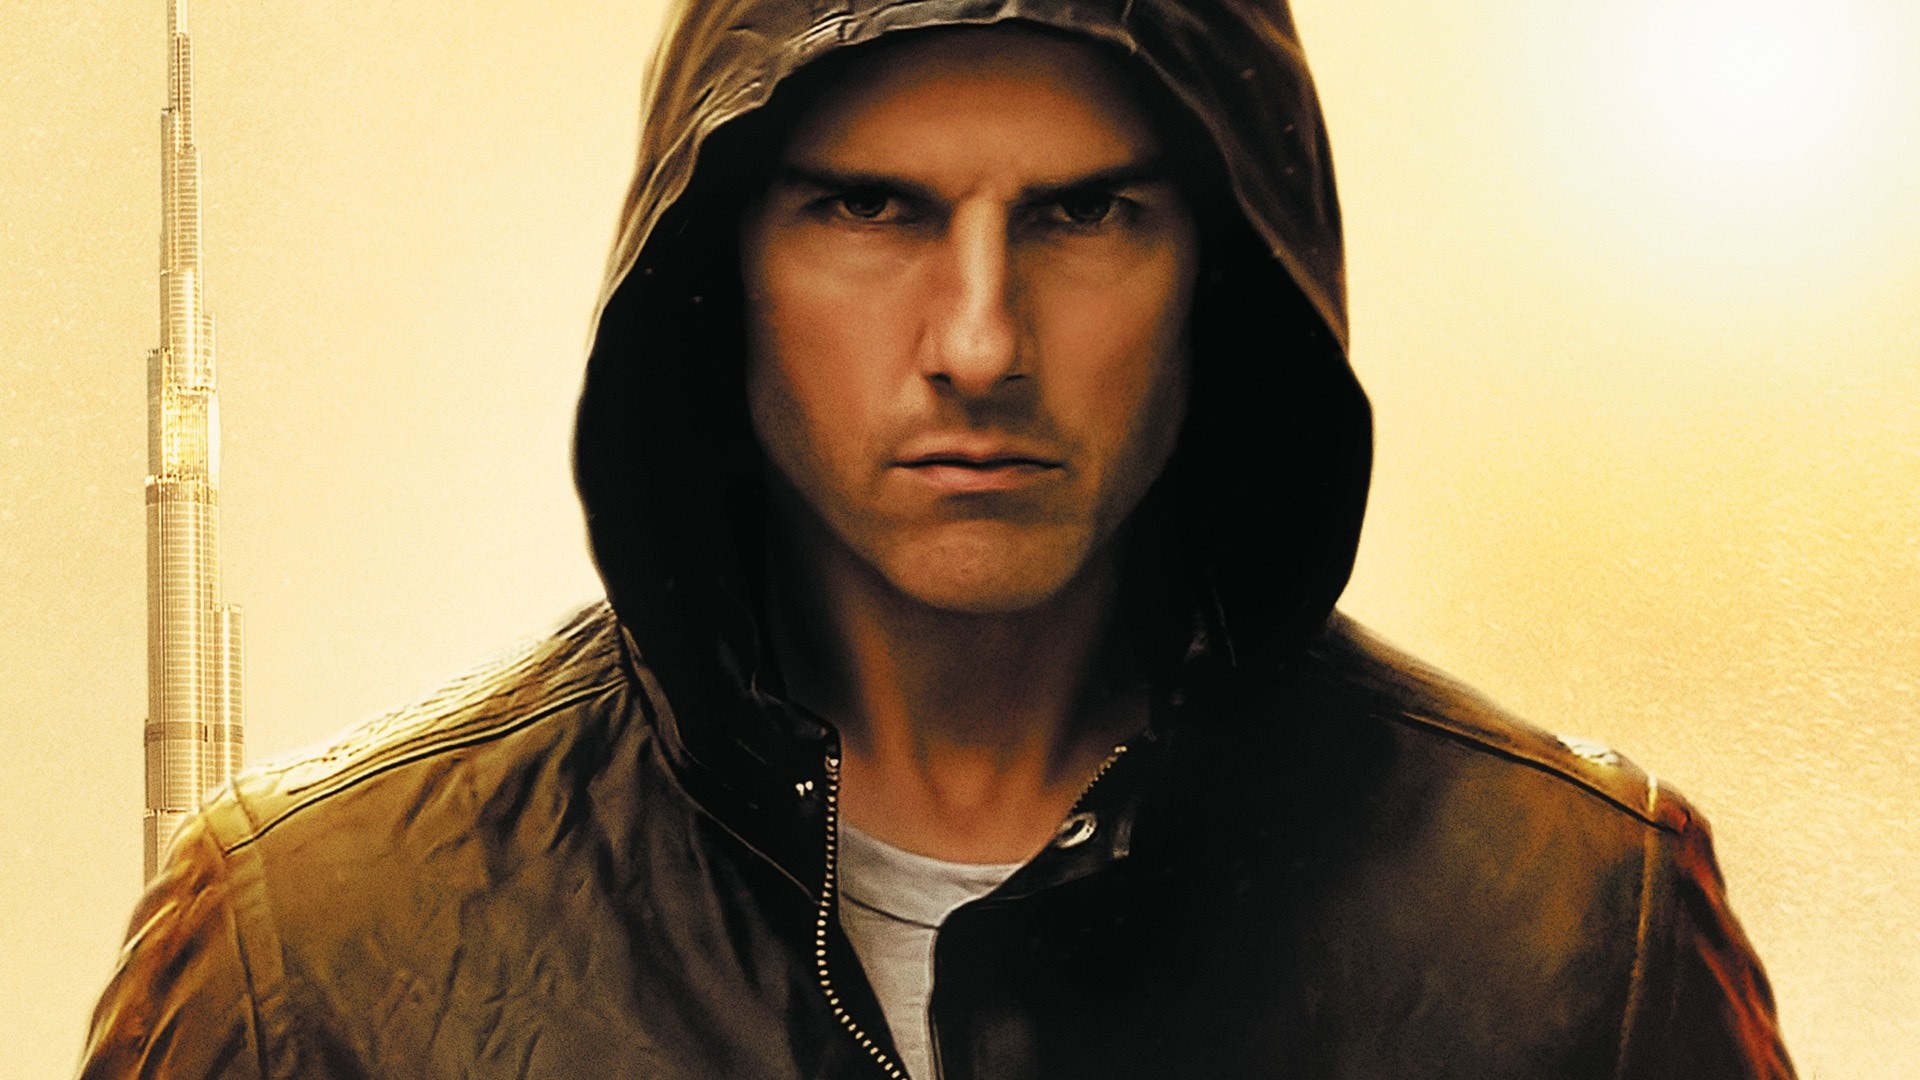 tom cruise hd wallpaper 3249